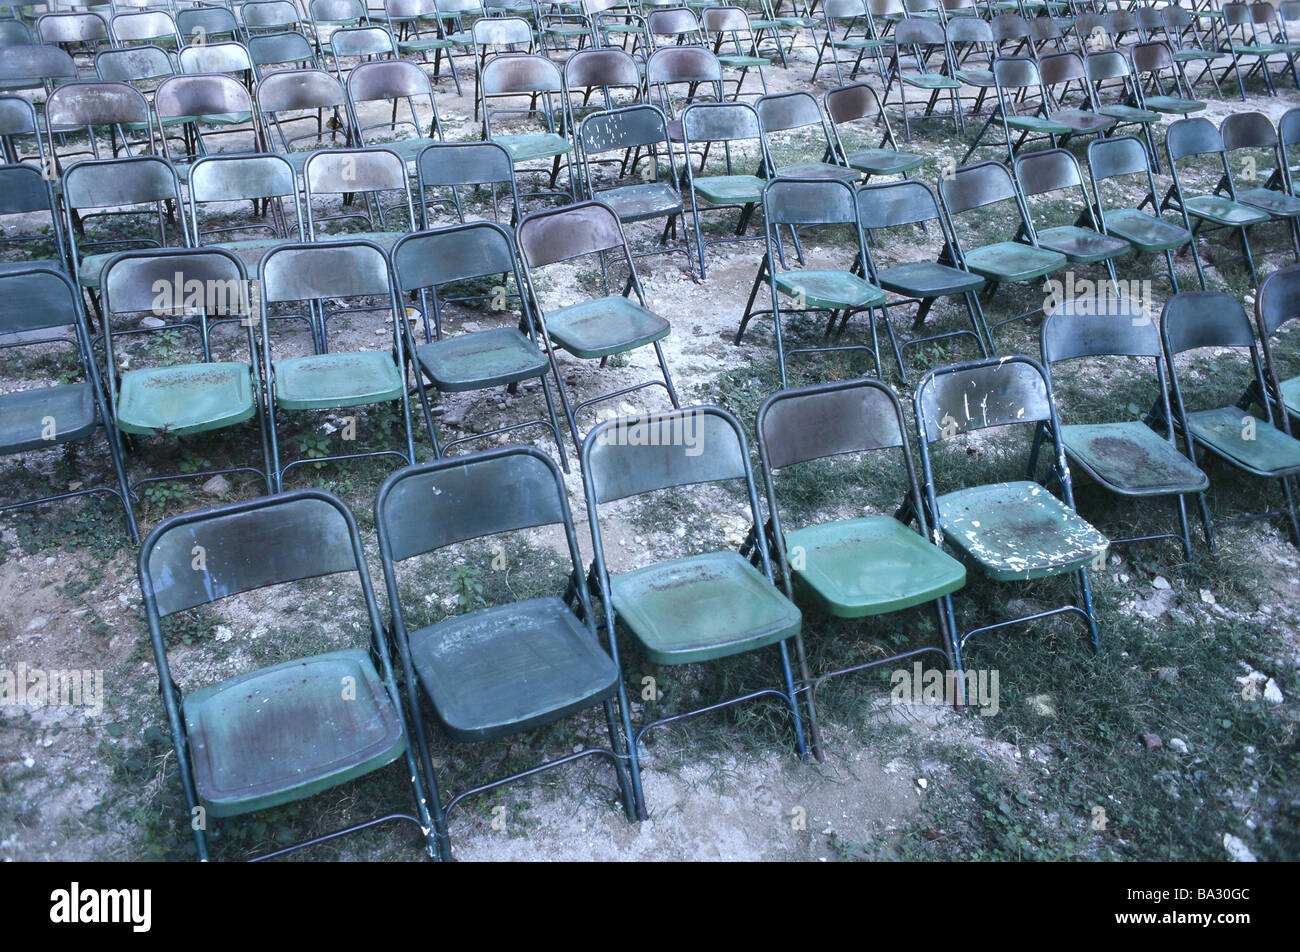 India Madurai Open Air Theaters Chairs Green Old Empty Free Terrains  Location Of The Event Auditorium Bestuhlung Chair Rows